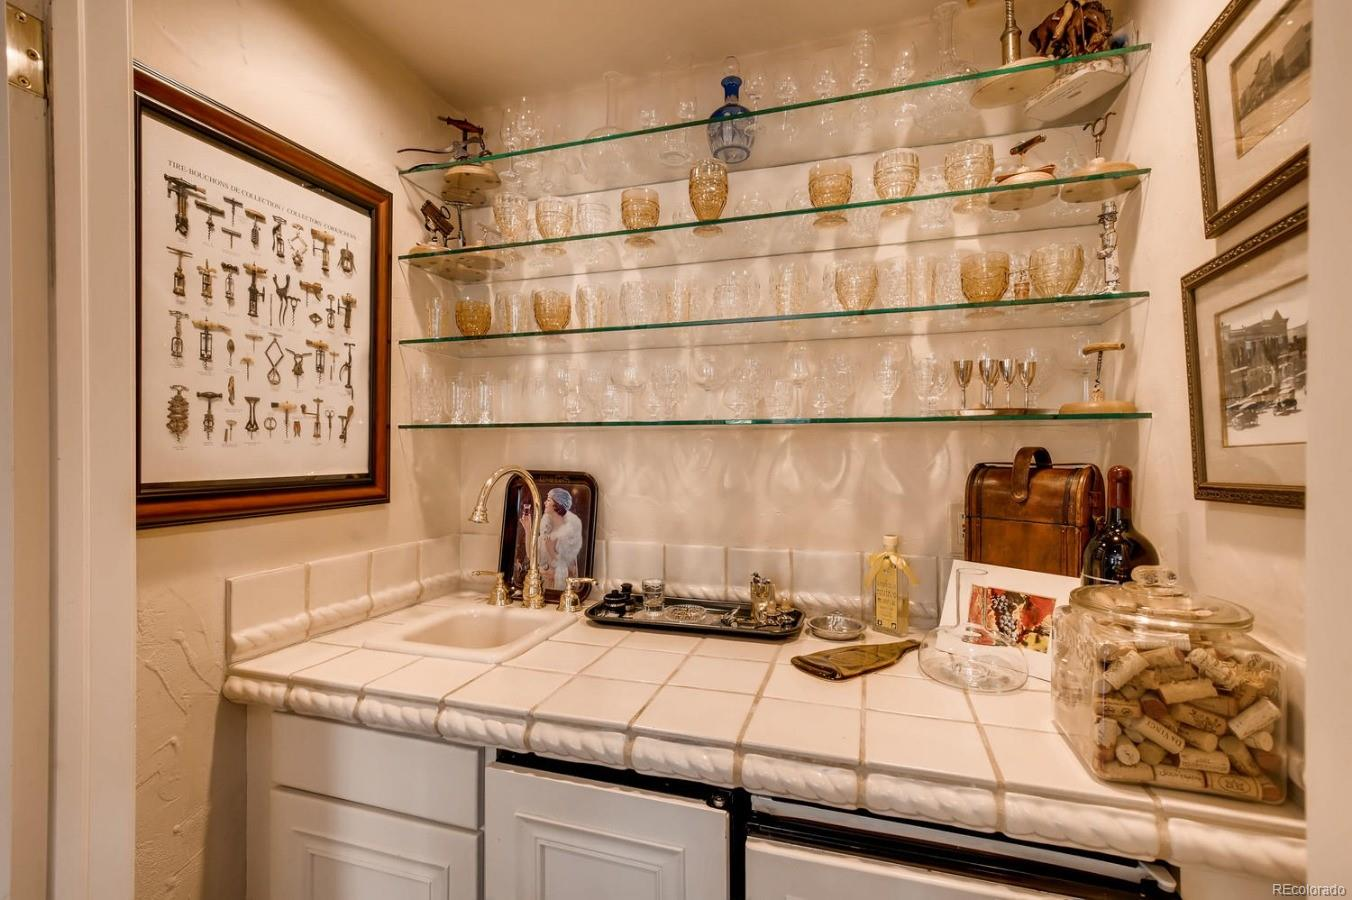 Wet Bar with Refrigerator and Ice maker